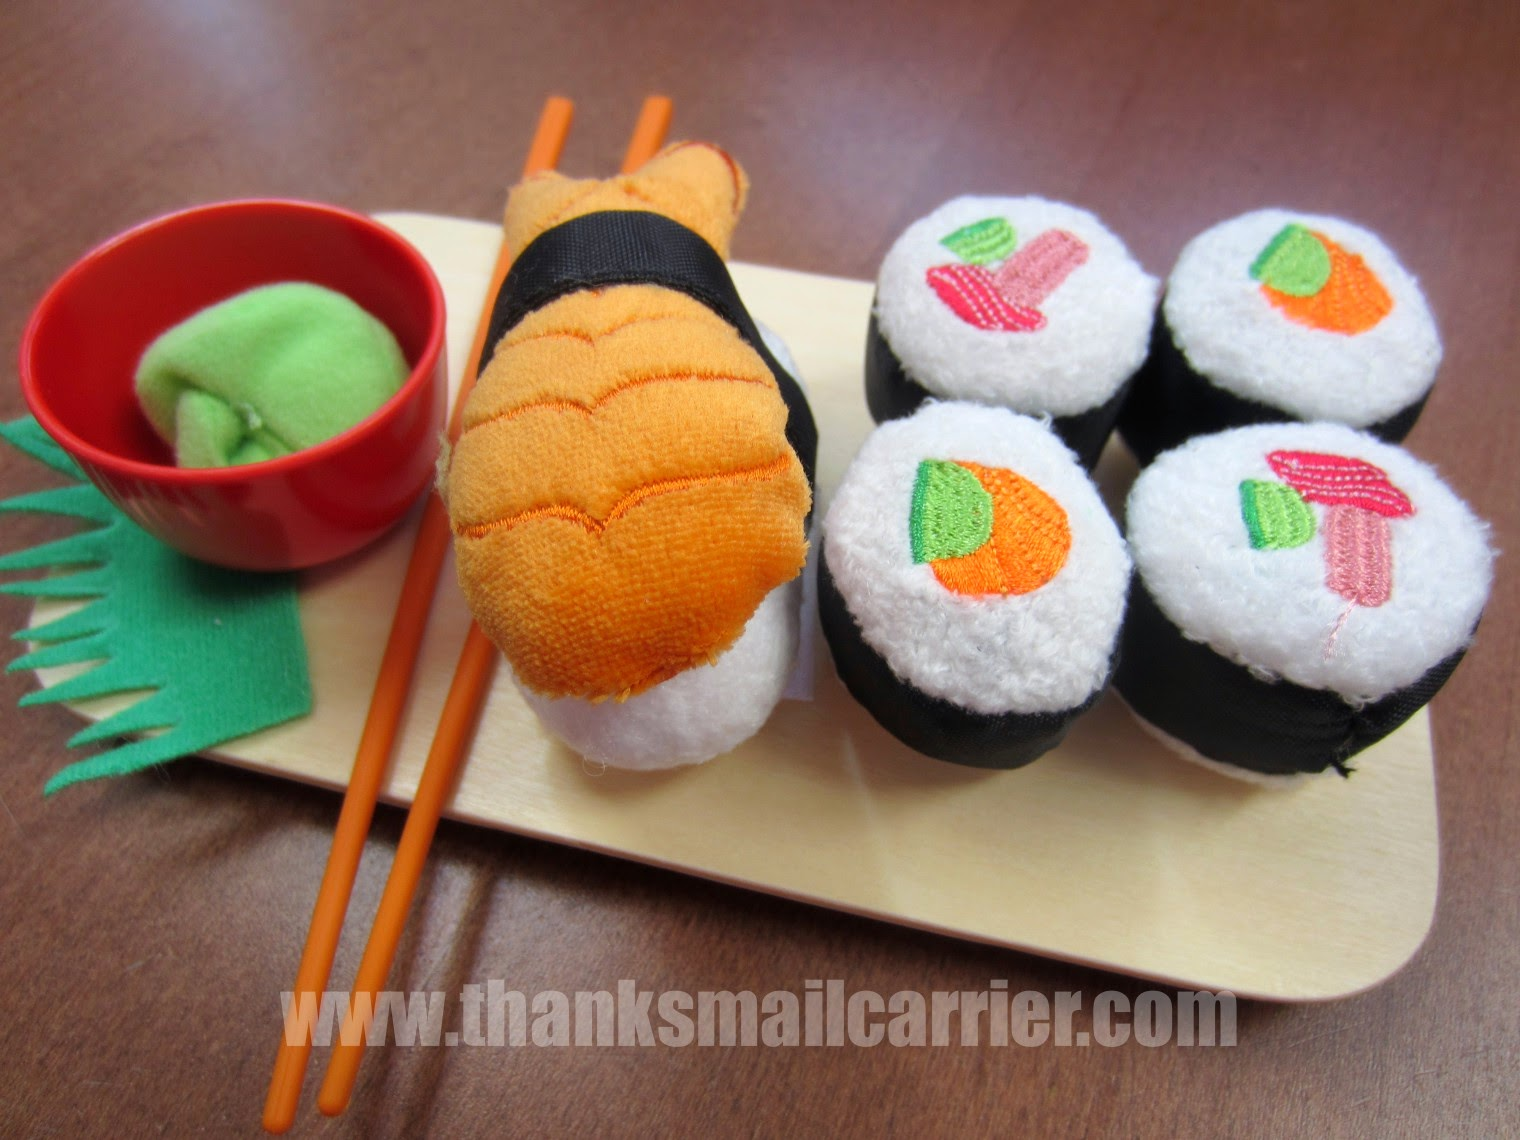 play sushi